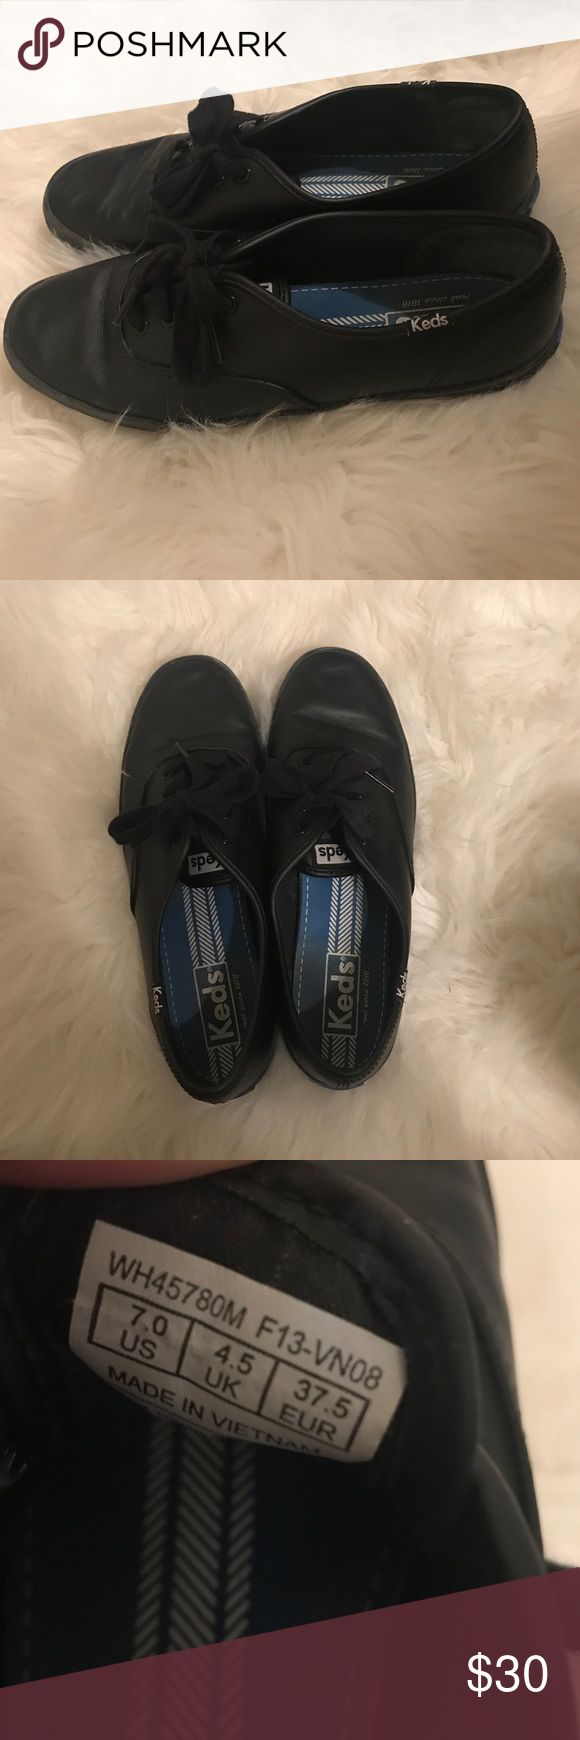 Black leather Keds tennis shoes Barely worn, (maybe twice) no box. Very good condition Keds Shoes Sneakers